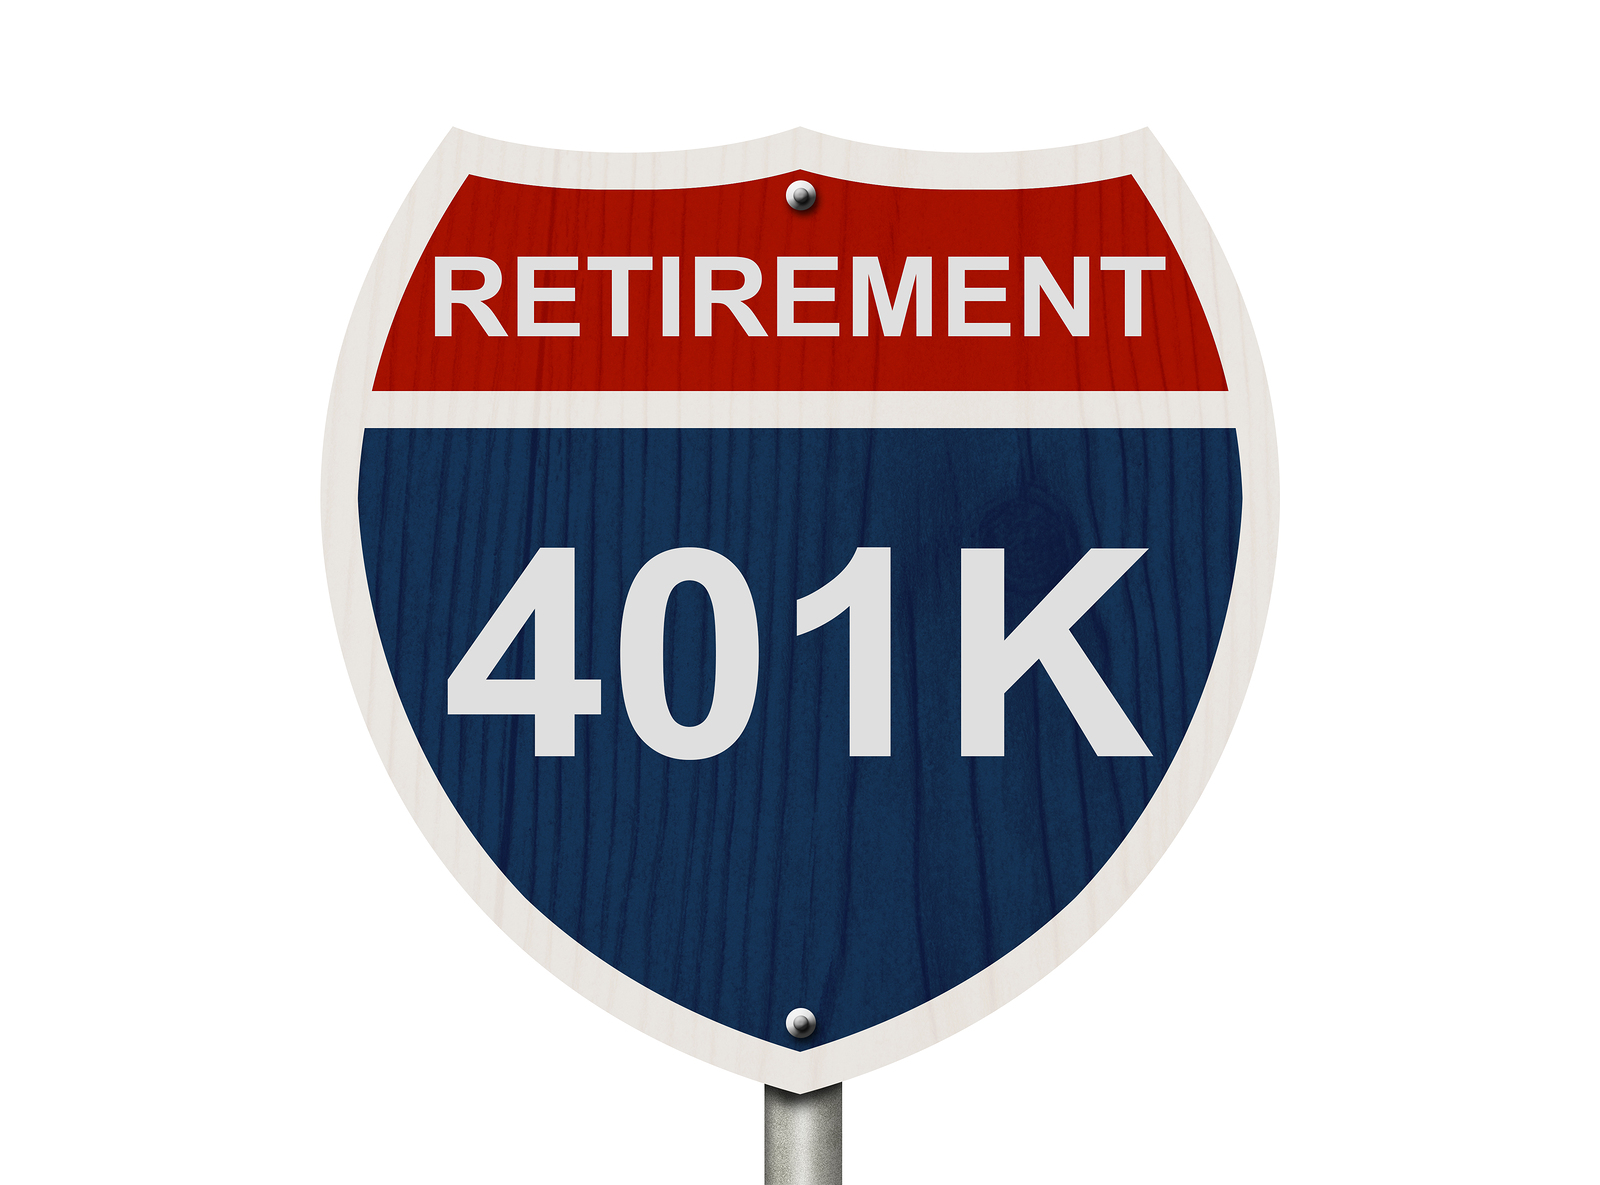 Free 401k Cliparts, Download Free Clip Art, Free Clip Art on Clipart.